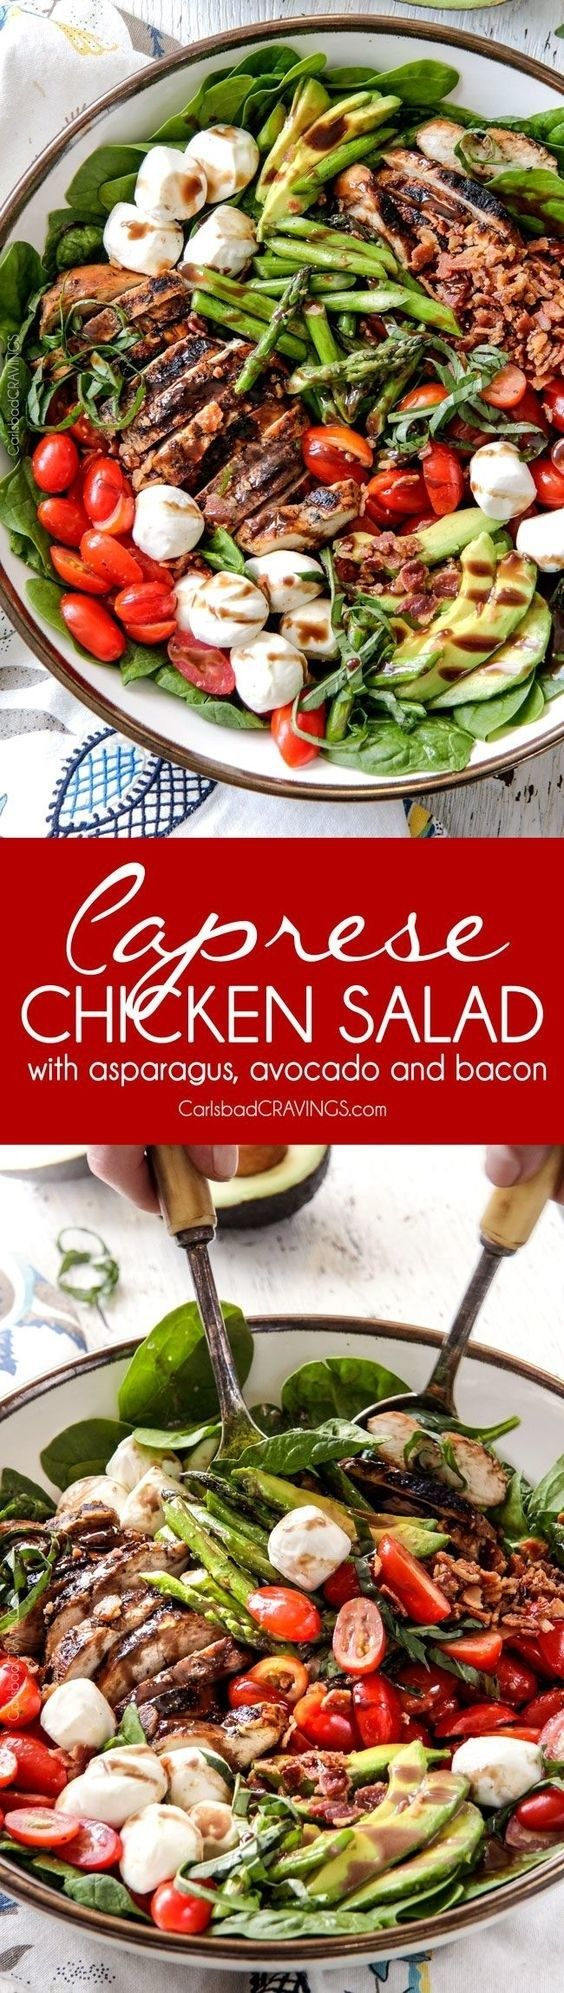 Bacon, Avocado, and Asparagus Salad | 7 Tasty Dinner Recipes You'll Want To Bookmark